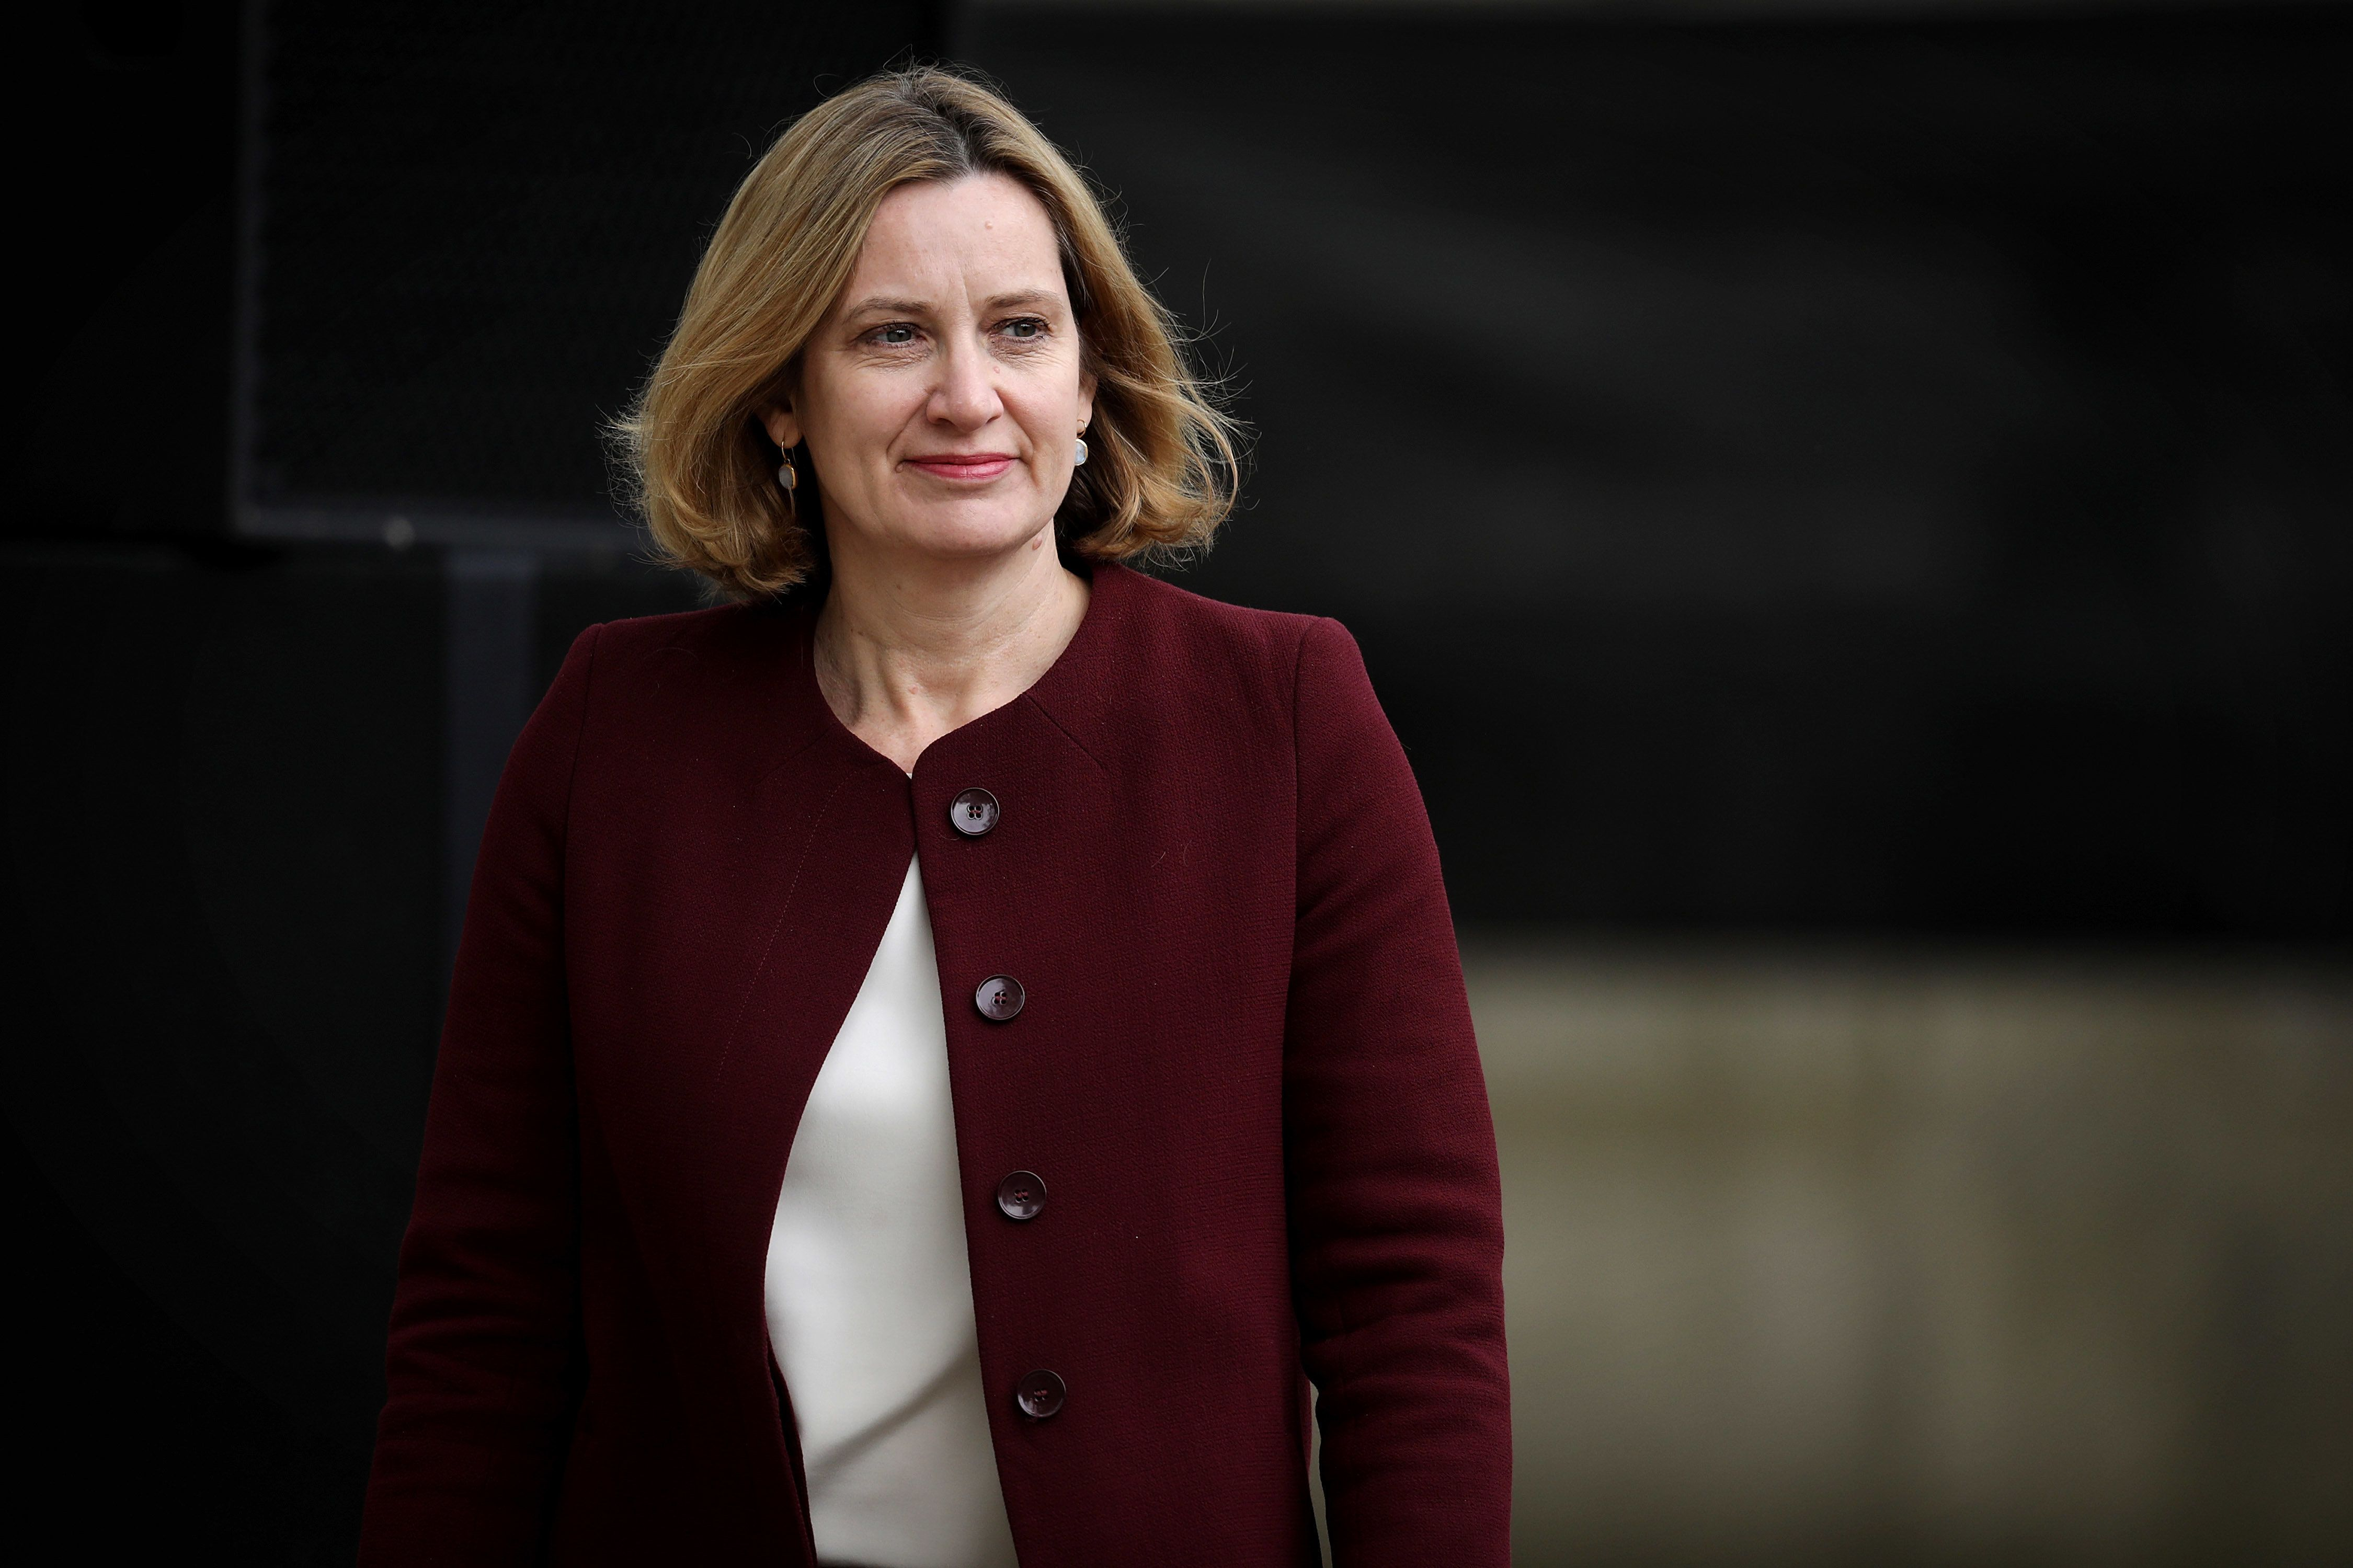 Amber Rudd Admits There Are Deportation Targets – But Claims She Had No Idea About